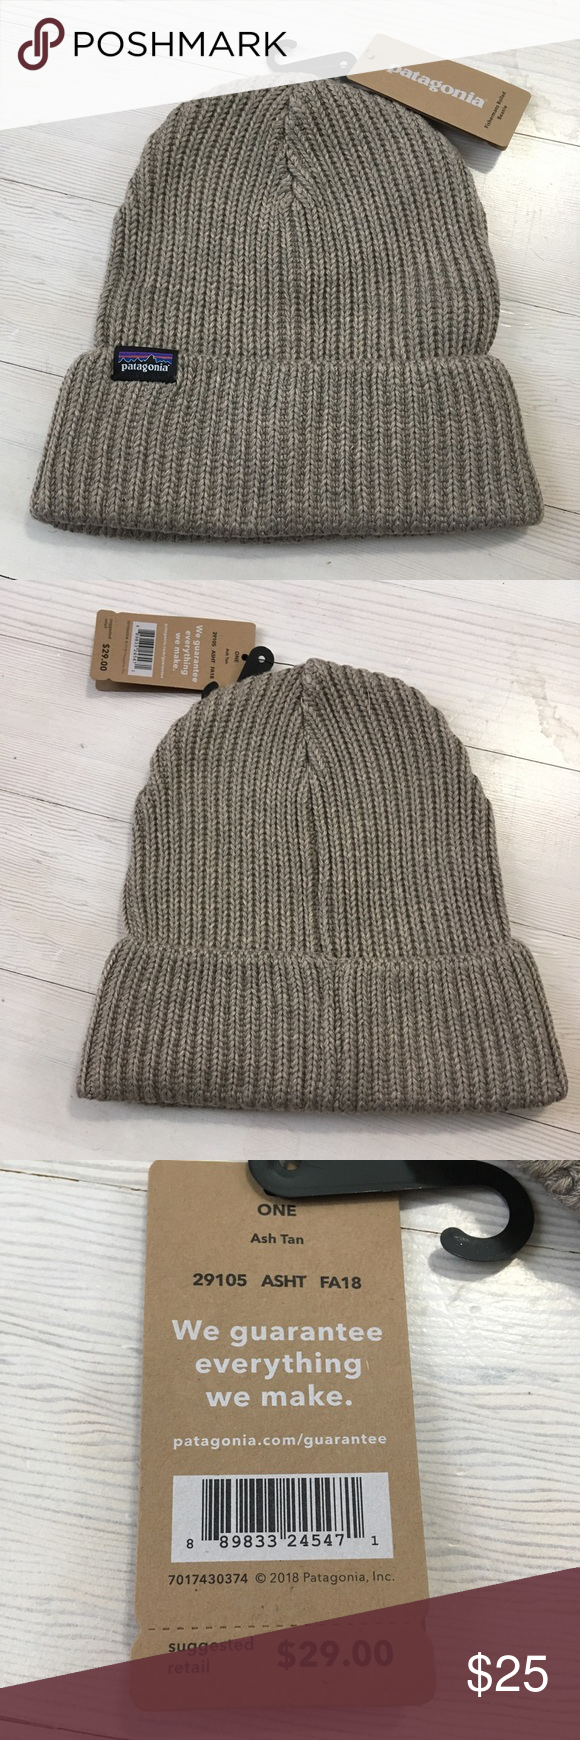 4ef2dc39 Patagonia Fishermans Rolled Cuff Beanie Ash Tan Patagonia Fishermans Rolled  Cuff Beanie Hat Ash Tan. New with tags. Final photograph just shows how it  fits.